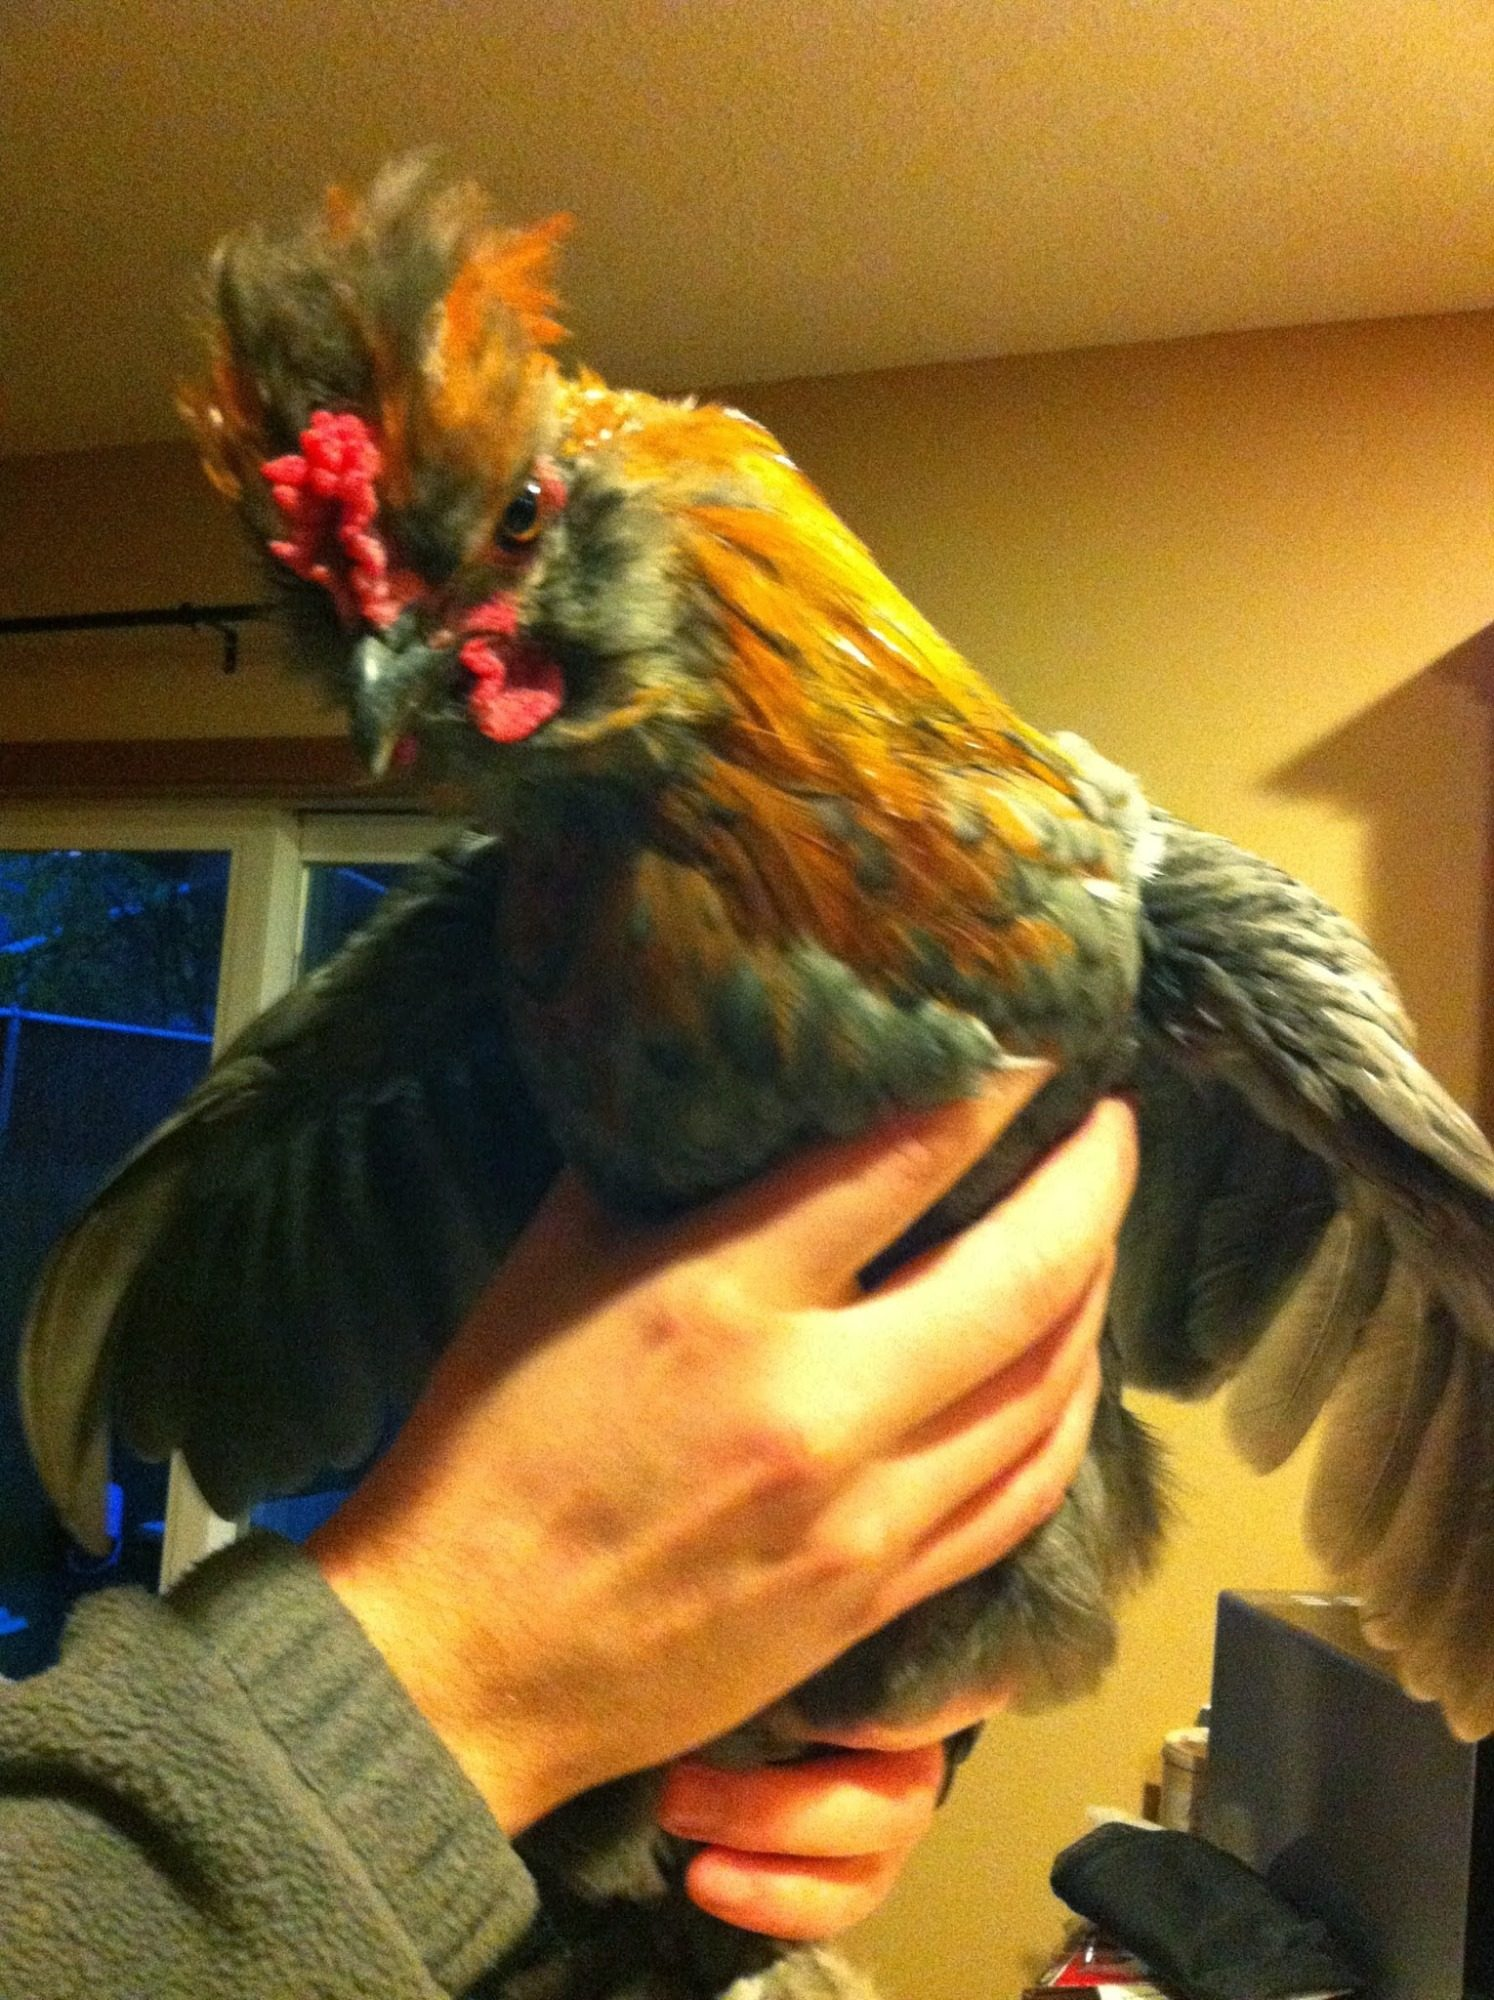 Omelet, who turned out to be a rooster. He was a half bantam.